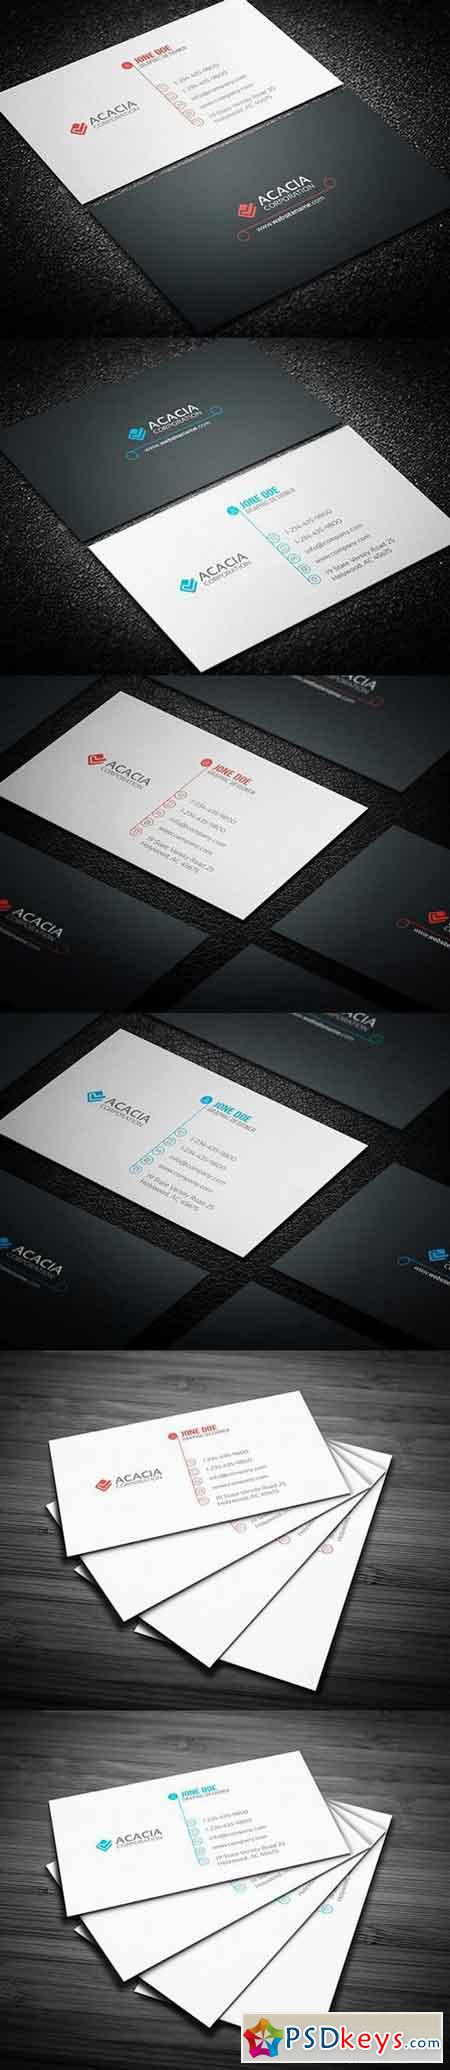 Round Business Card 898356